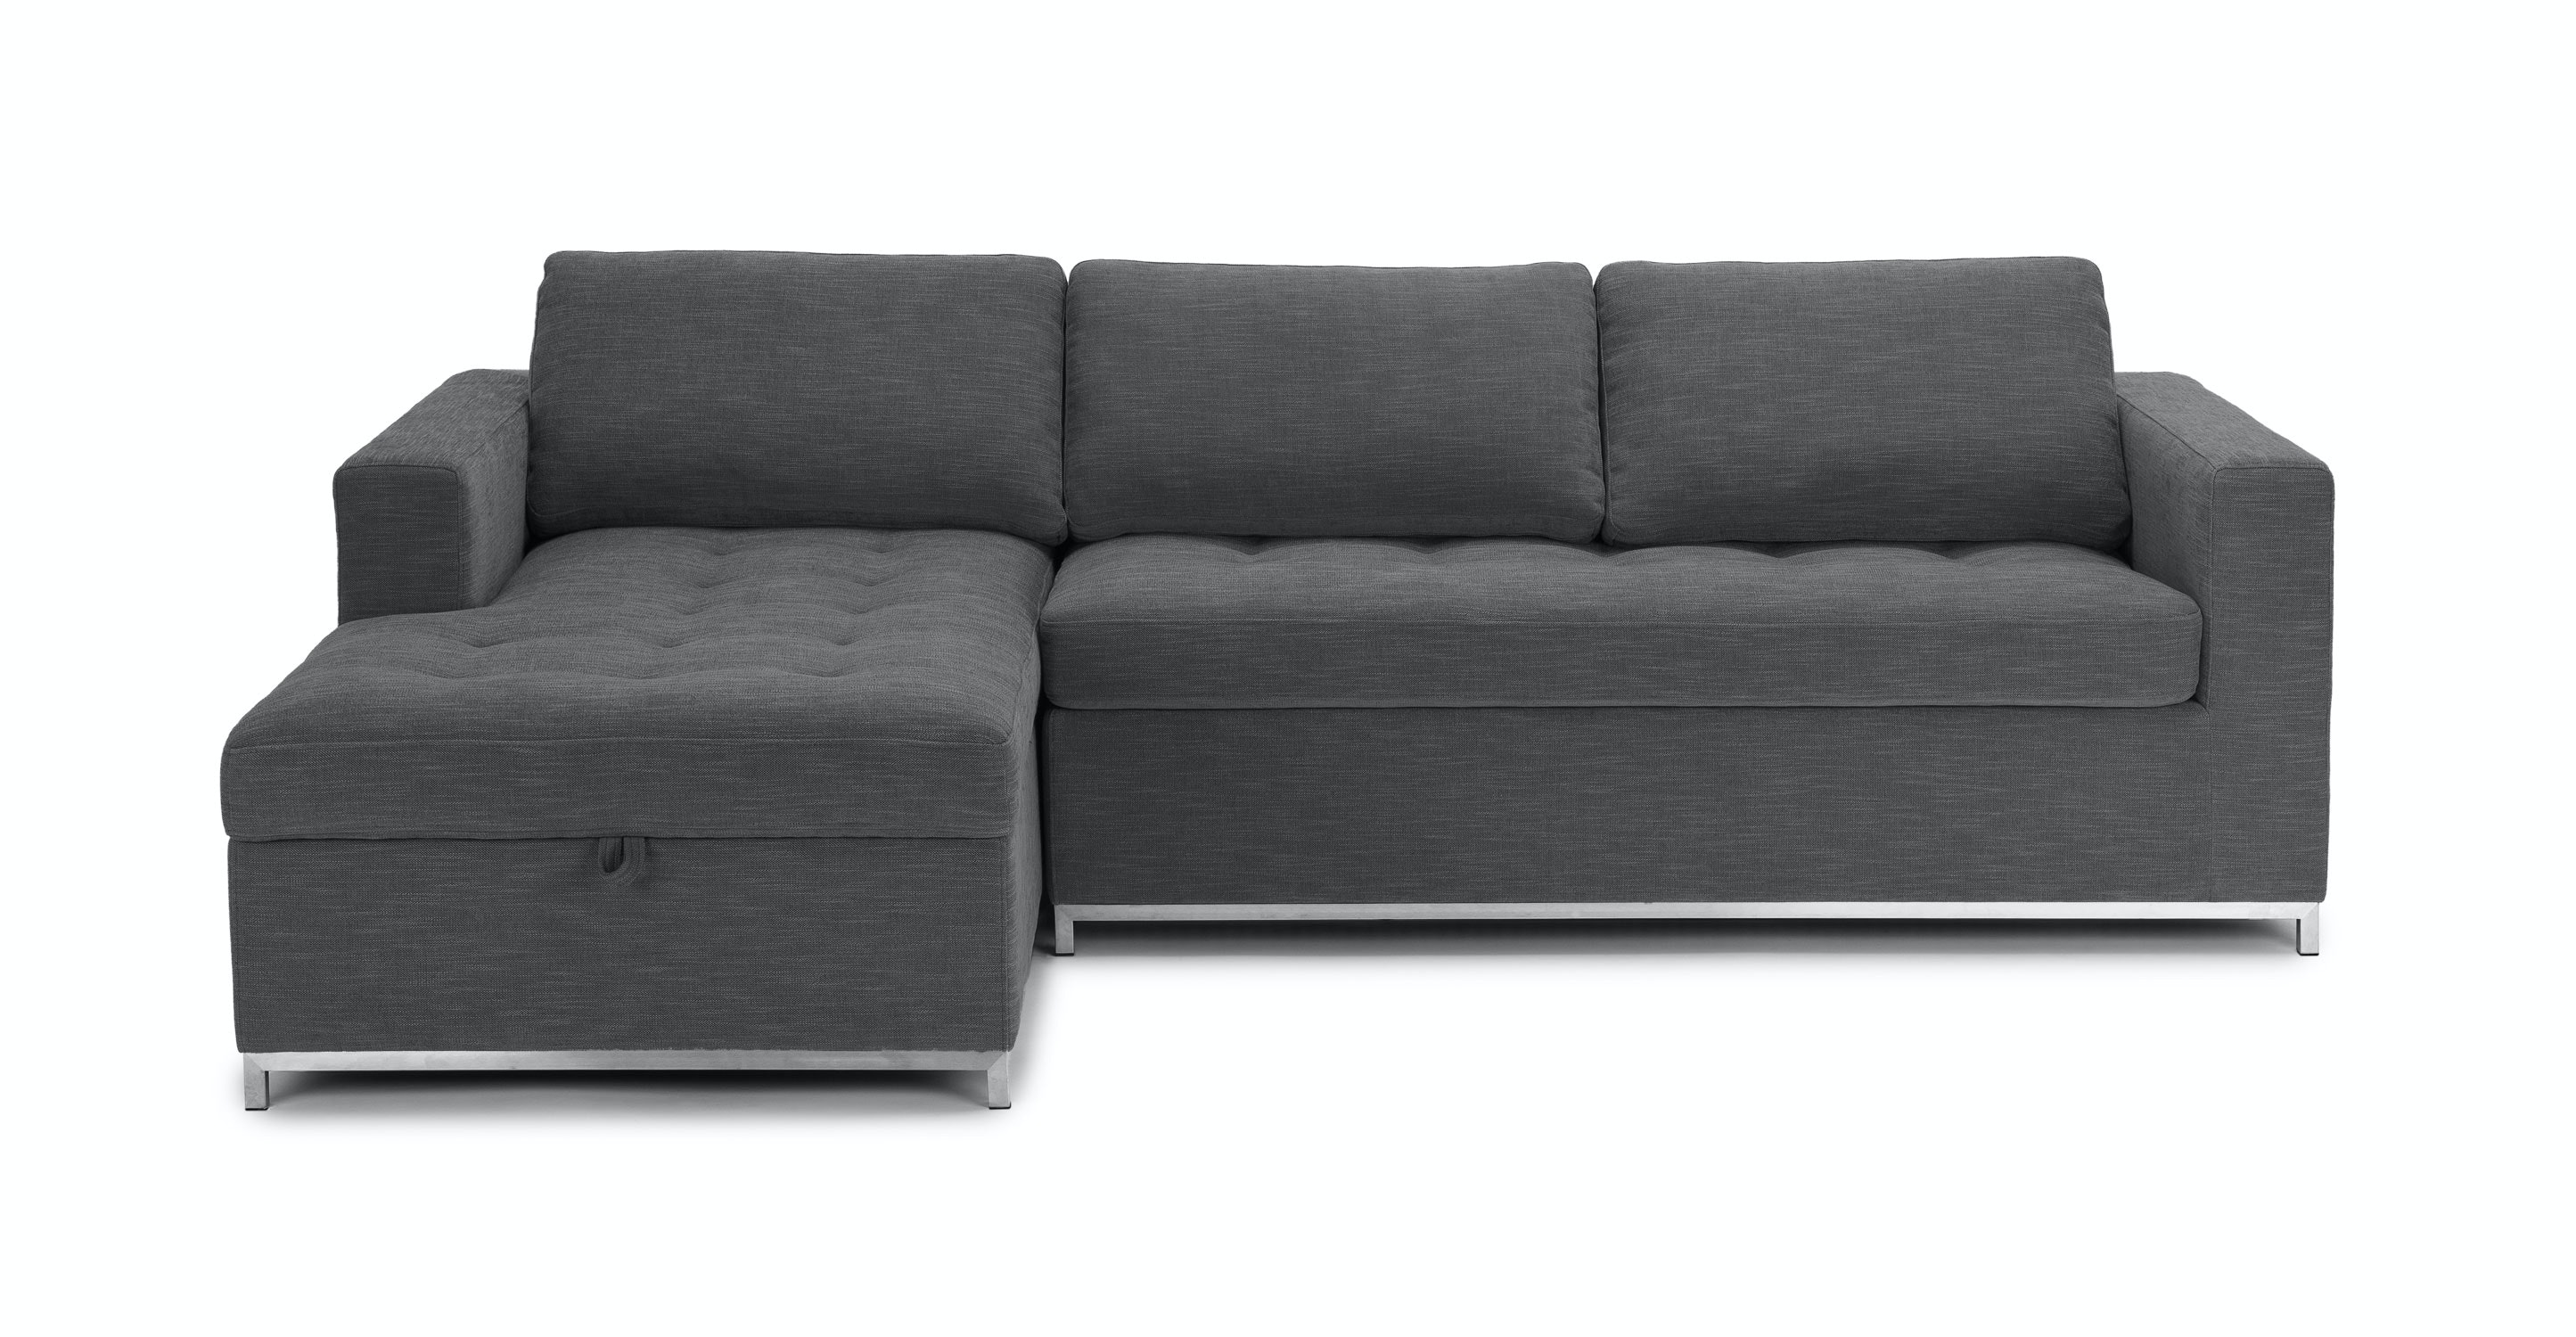 Soma Twilight Gray Left Sofa Bed Sectionals Article Modern Mid Century And Scandinavian Furniture